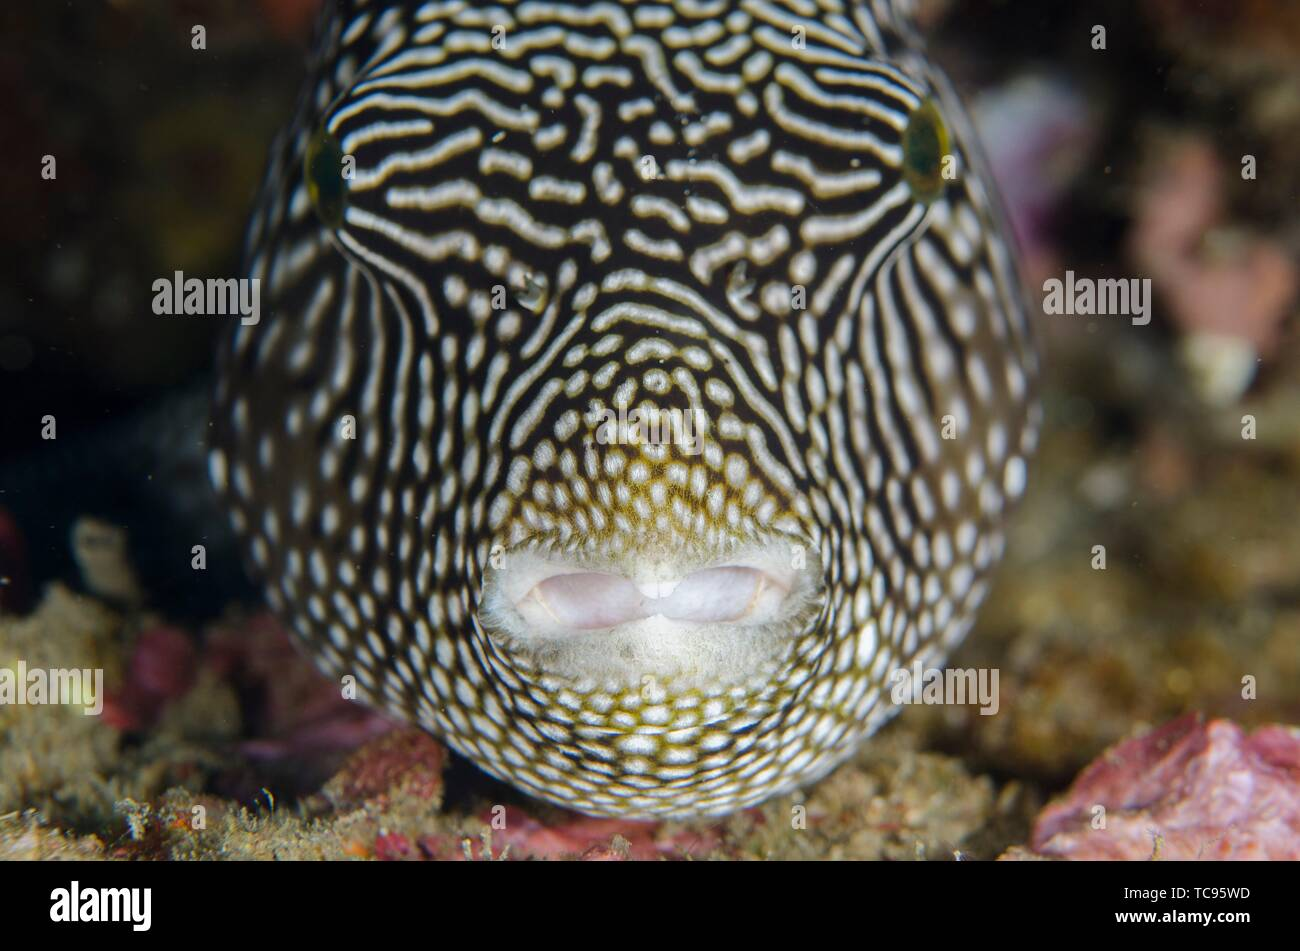 Amed Indonesia Map Map Puffer (Arothron mappa), Jemeluk Bay dive site, Amed, Bali